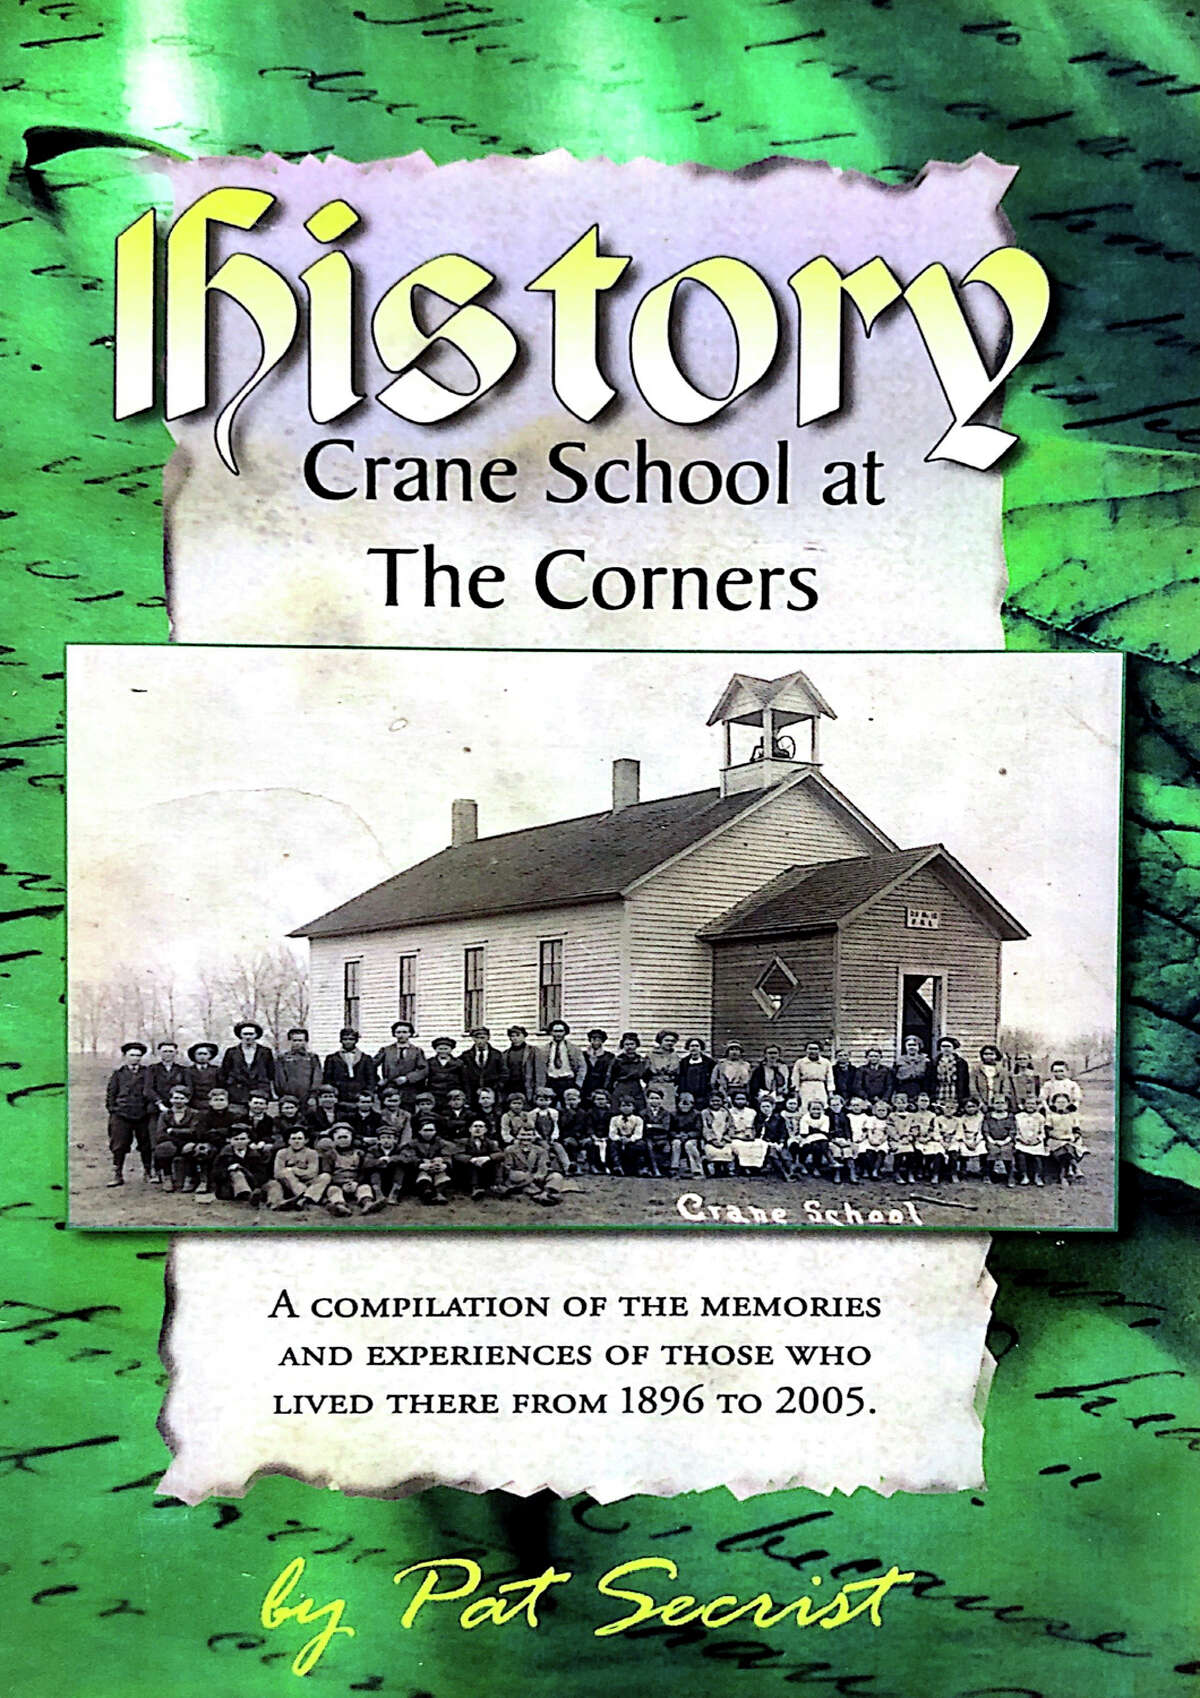 Pages from a book by Pat Secrist illustrate the history of the Crane School. The building has been purchased by Greg and Lori Miiler, who plan to tear down the original school building and open up a business in the newer addition. (Photos provided)